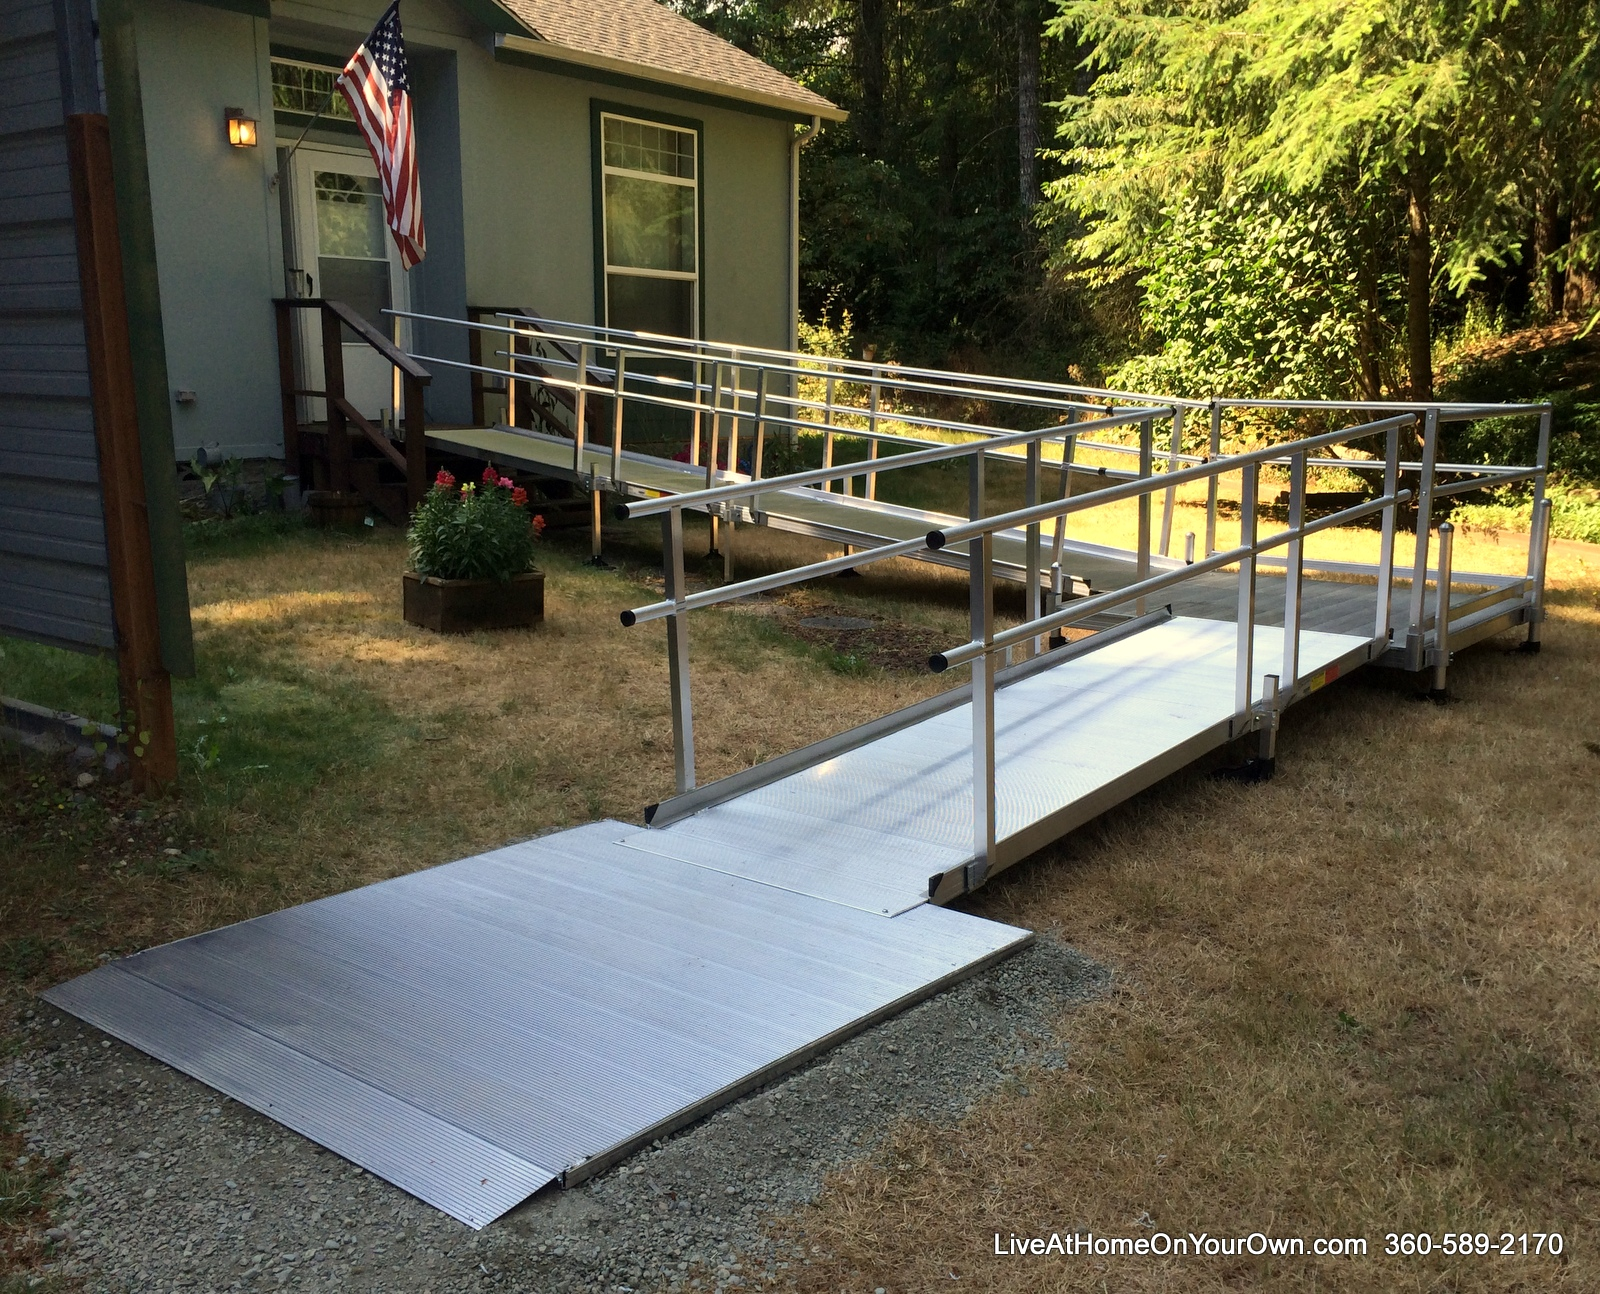 Maintain your independence and accessibility with a ramp or